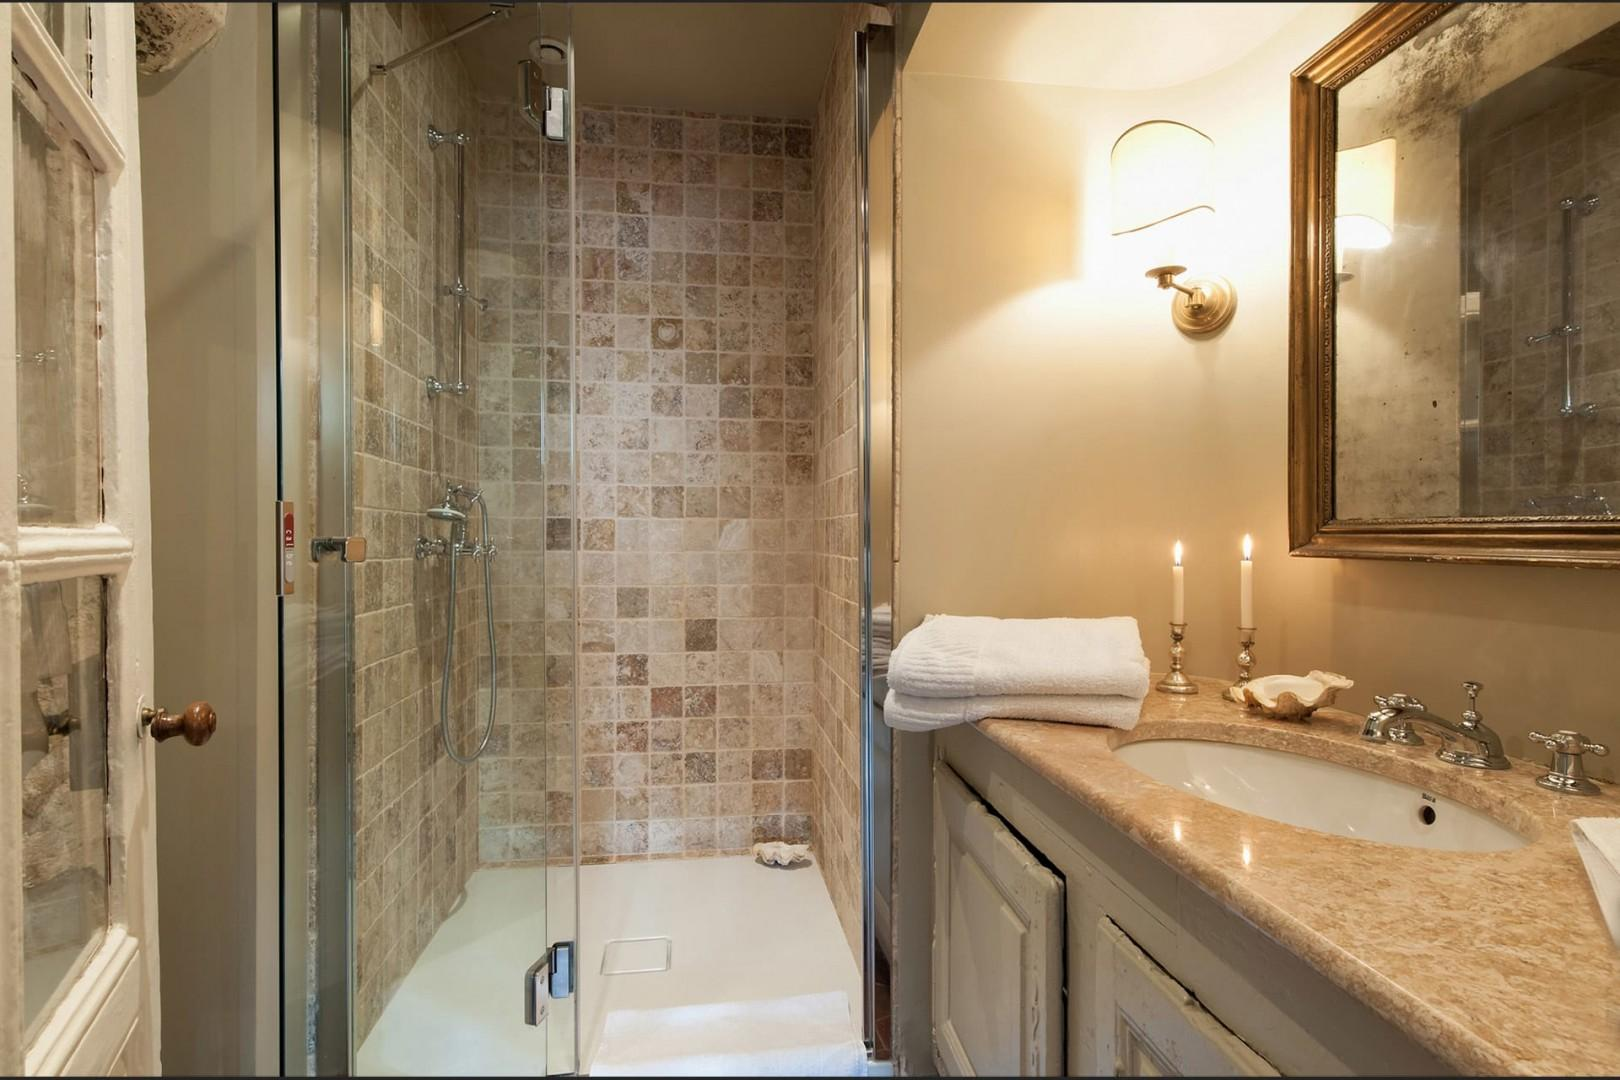 Start your day with an energizing shower in this gorgeous bathroom!